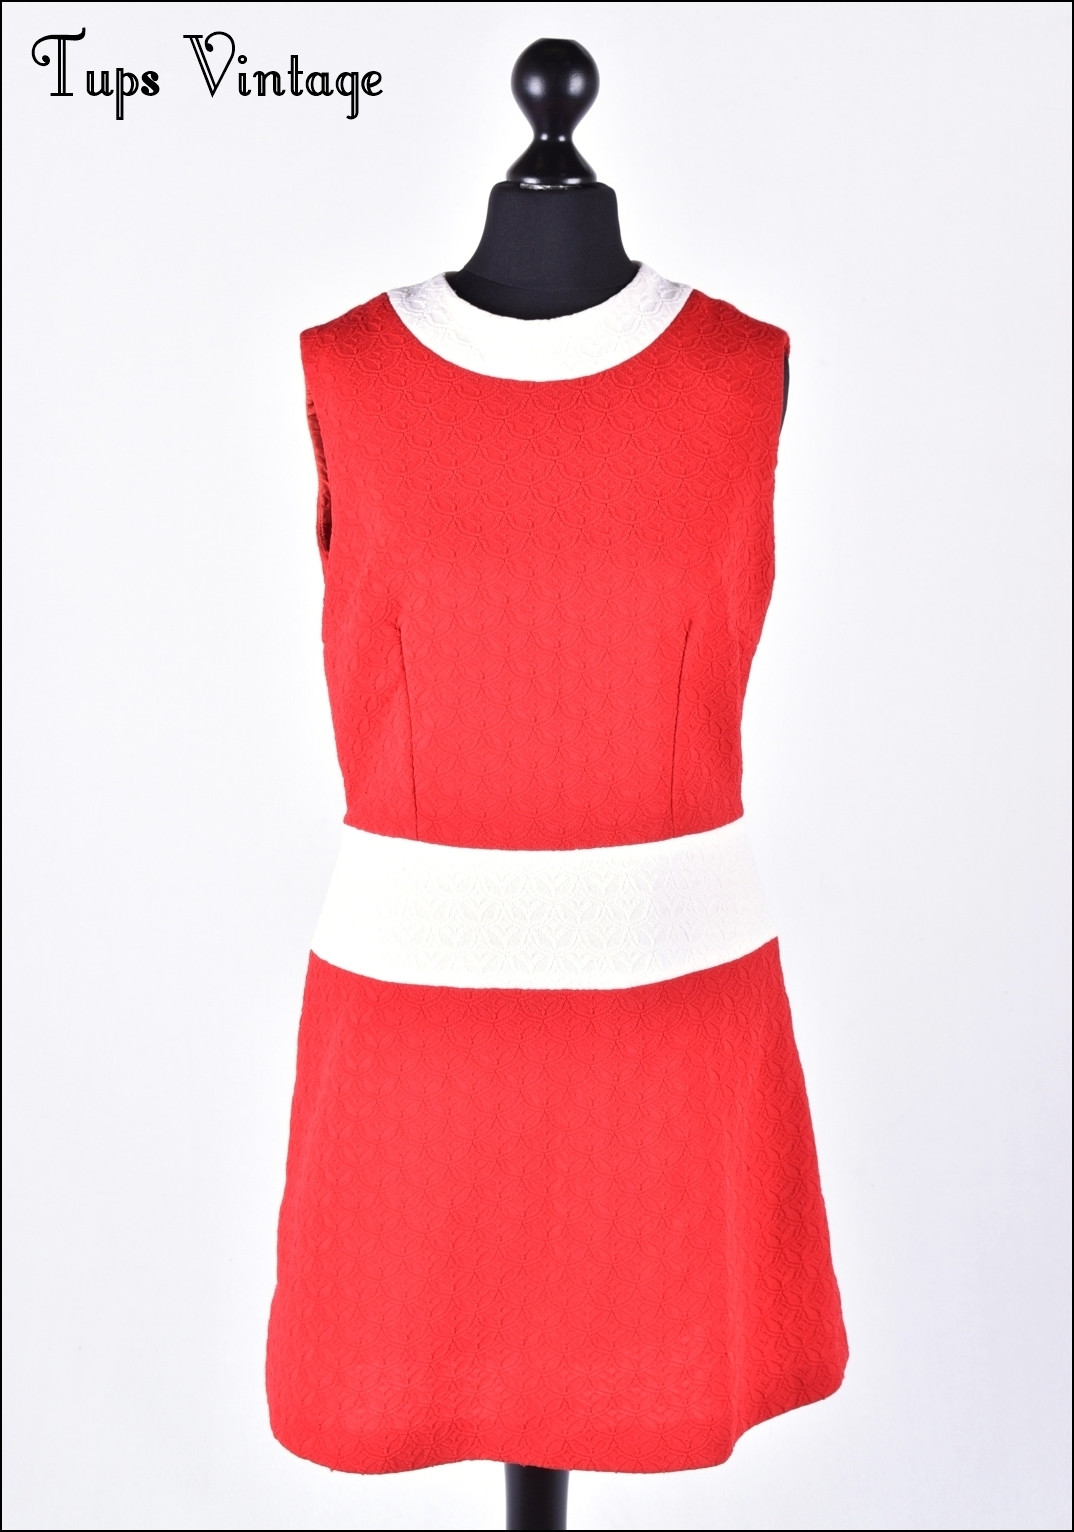 Vintage mod mini dress